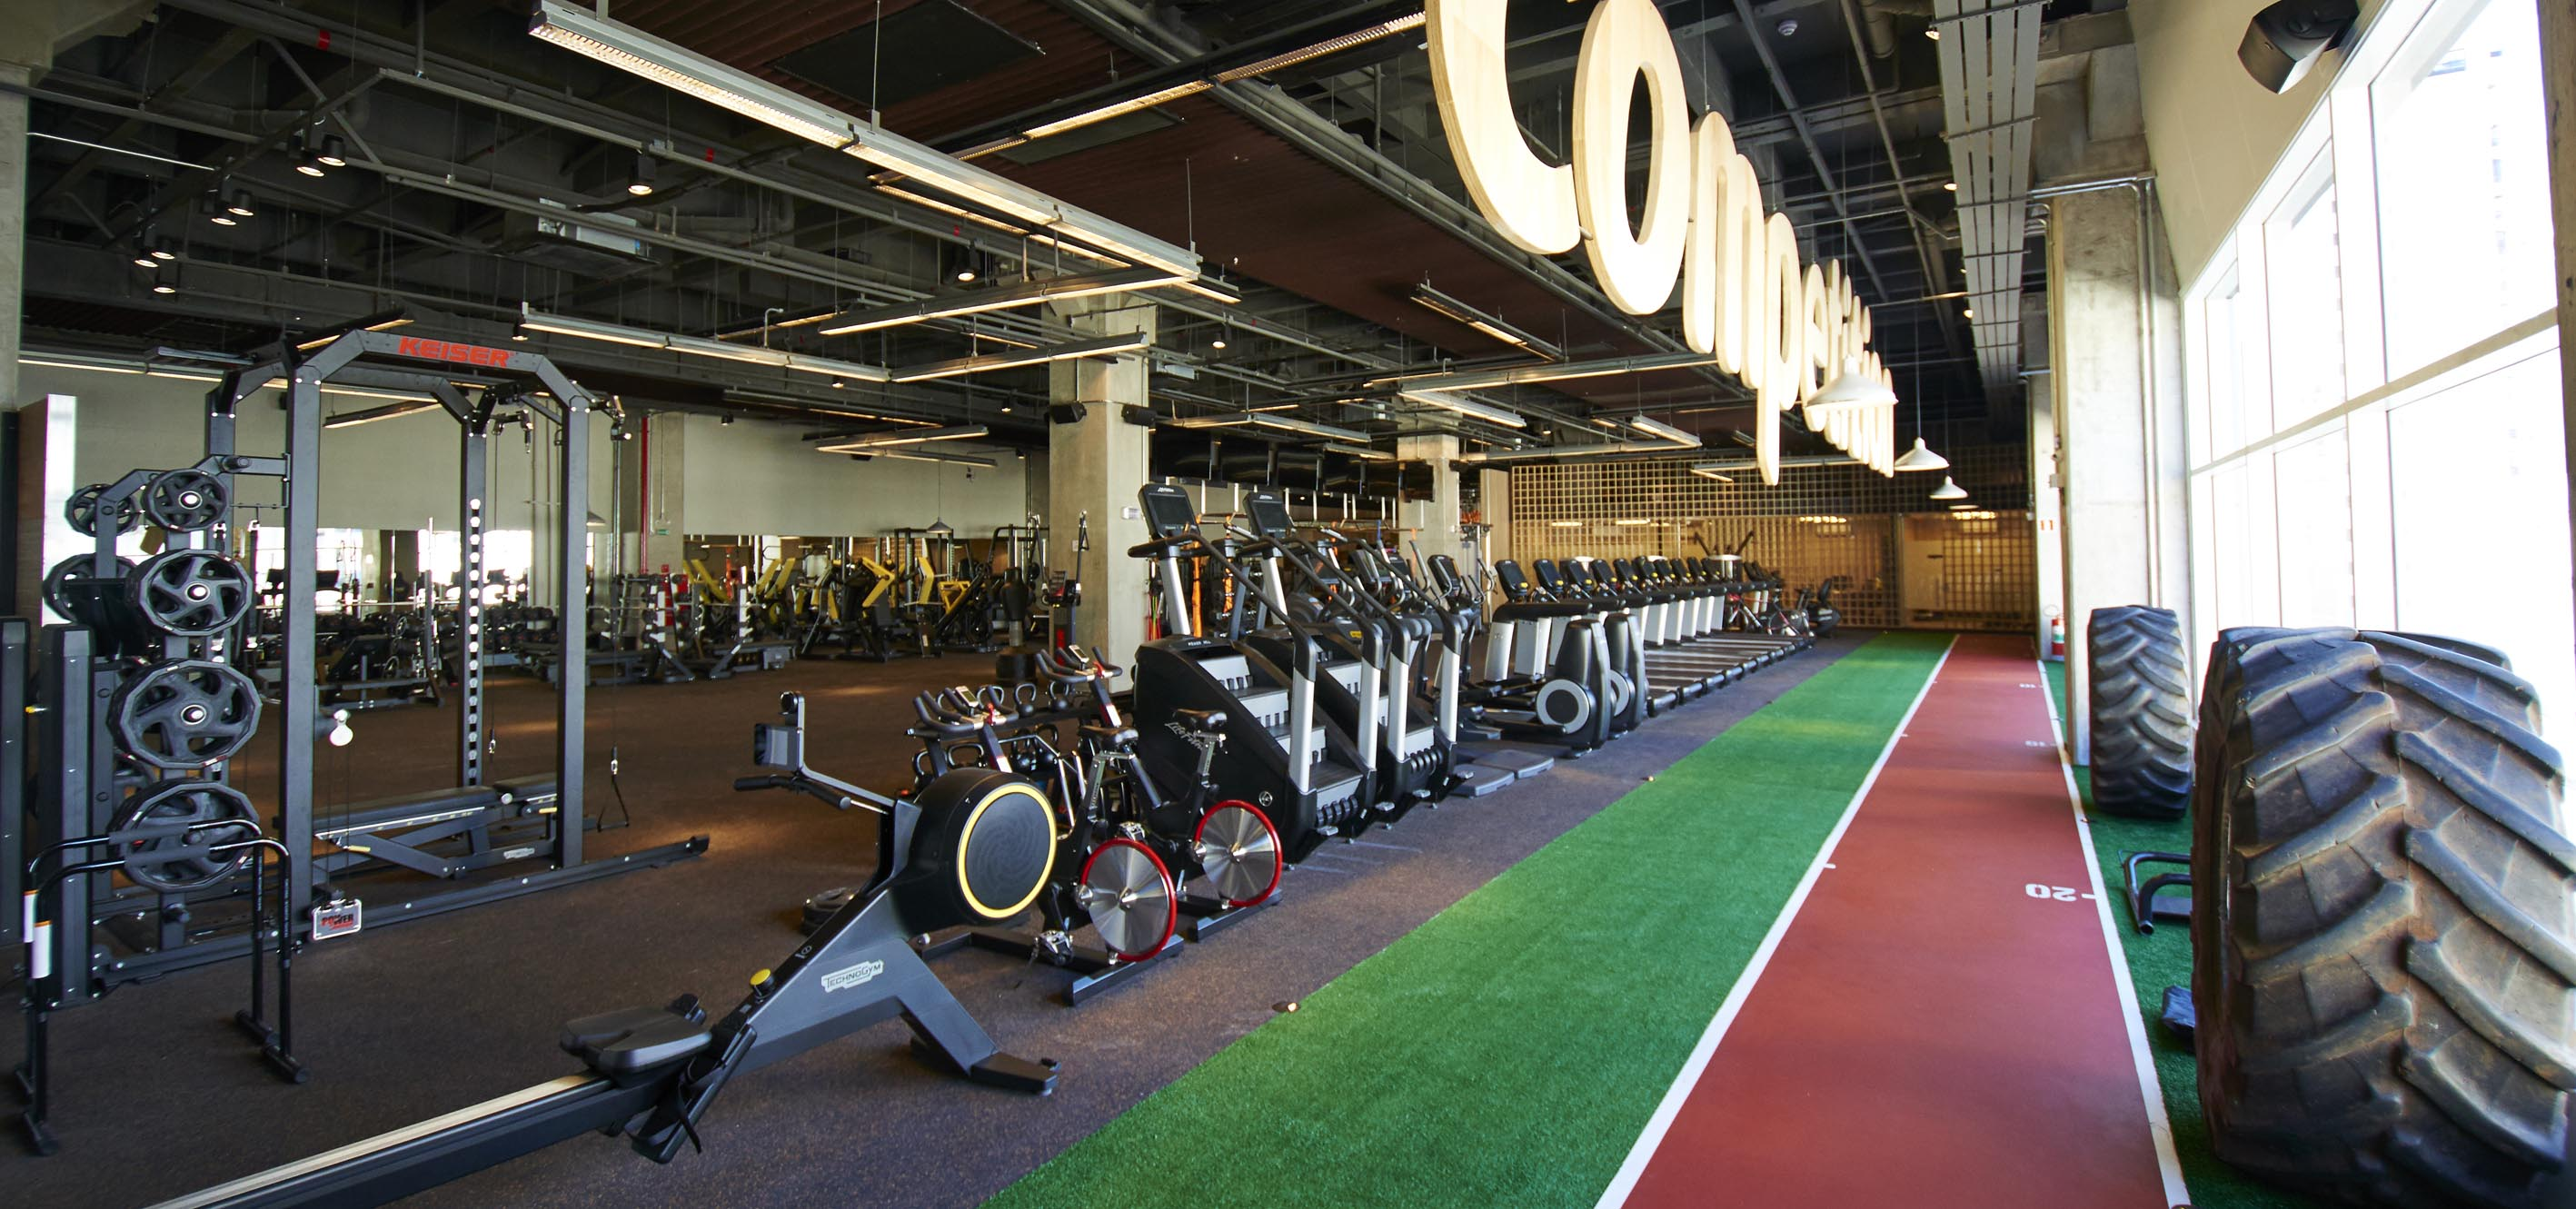 COMPETITION TRAINING GYM